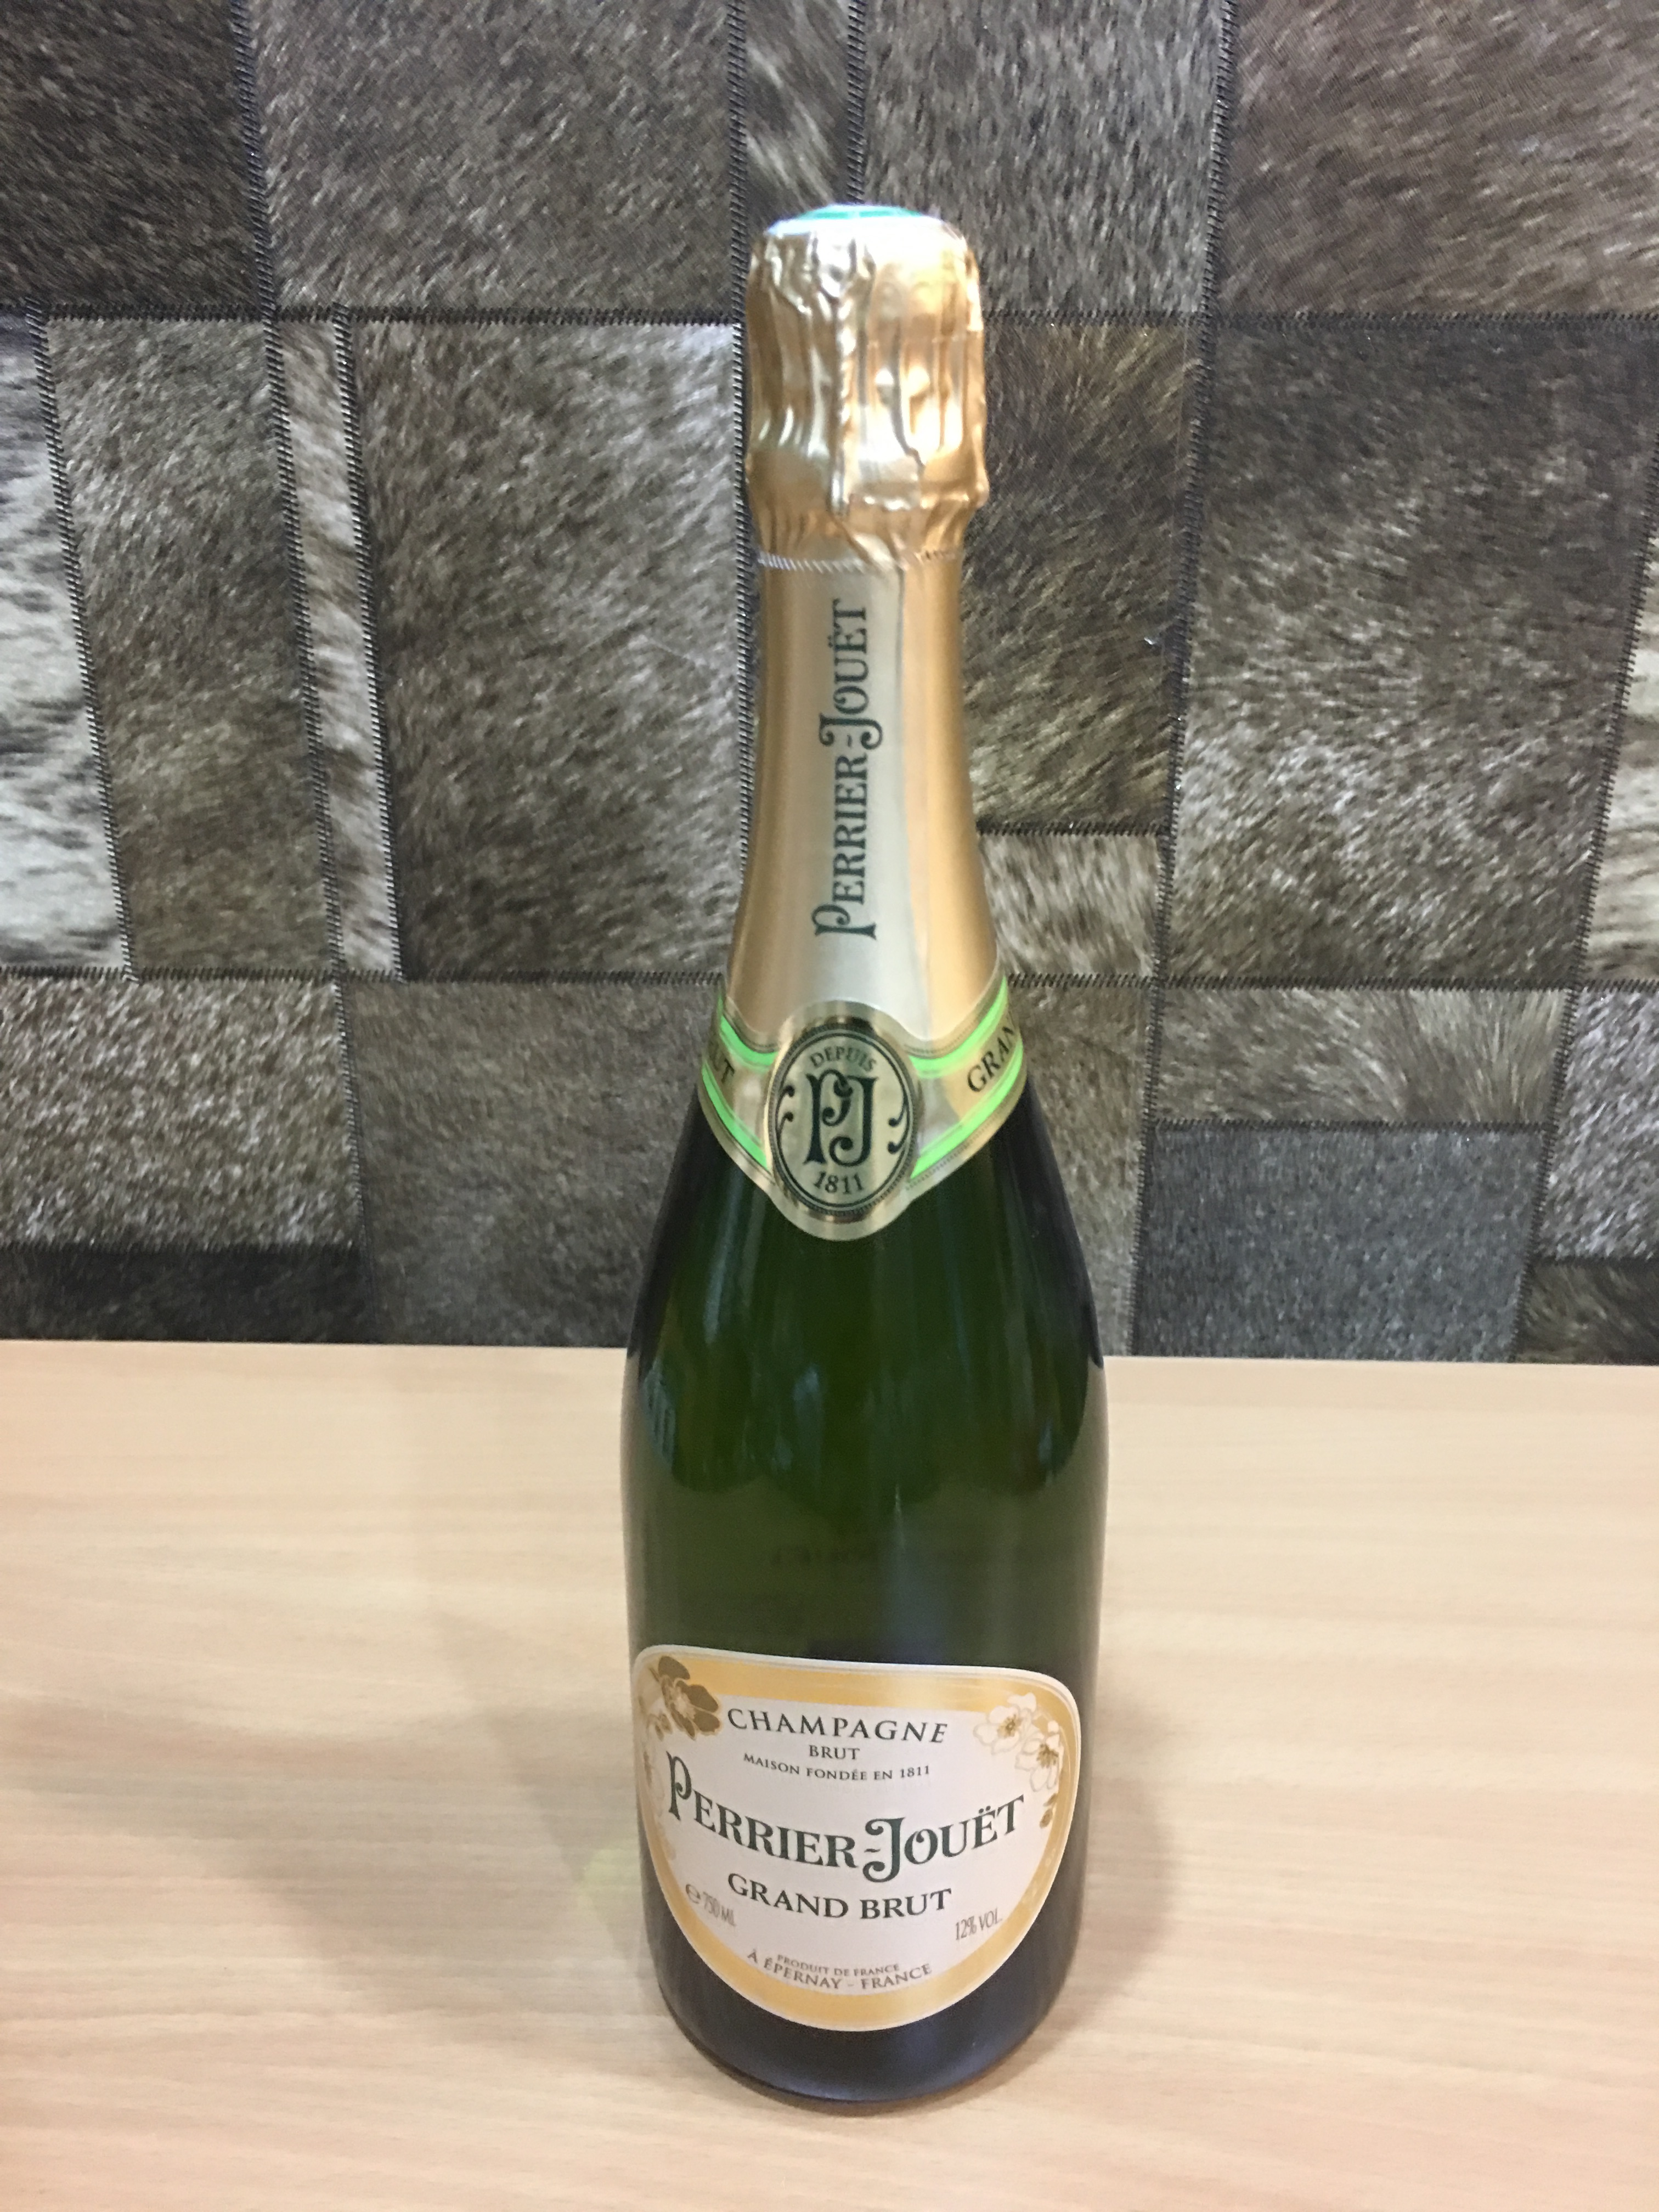 Perrier Jouet Grand Brut Champagne, 75cl, Acl: 12%